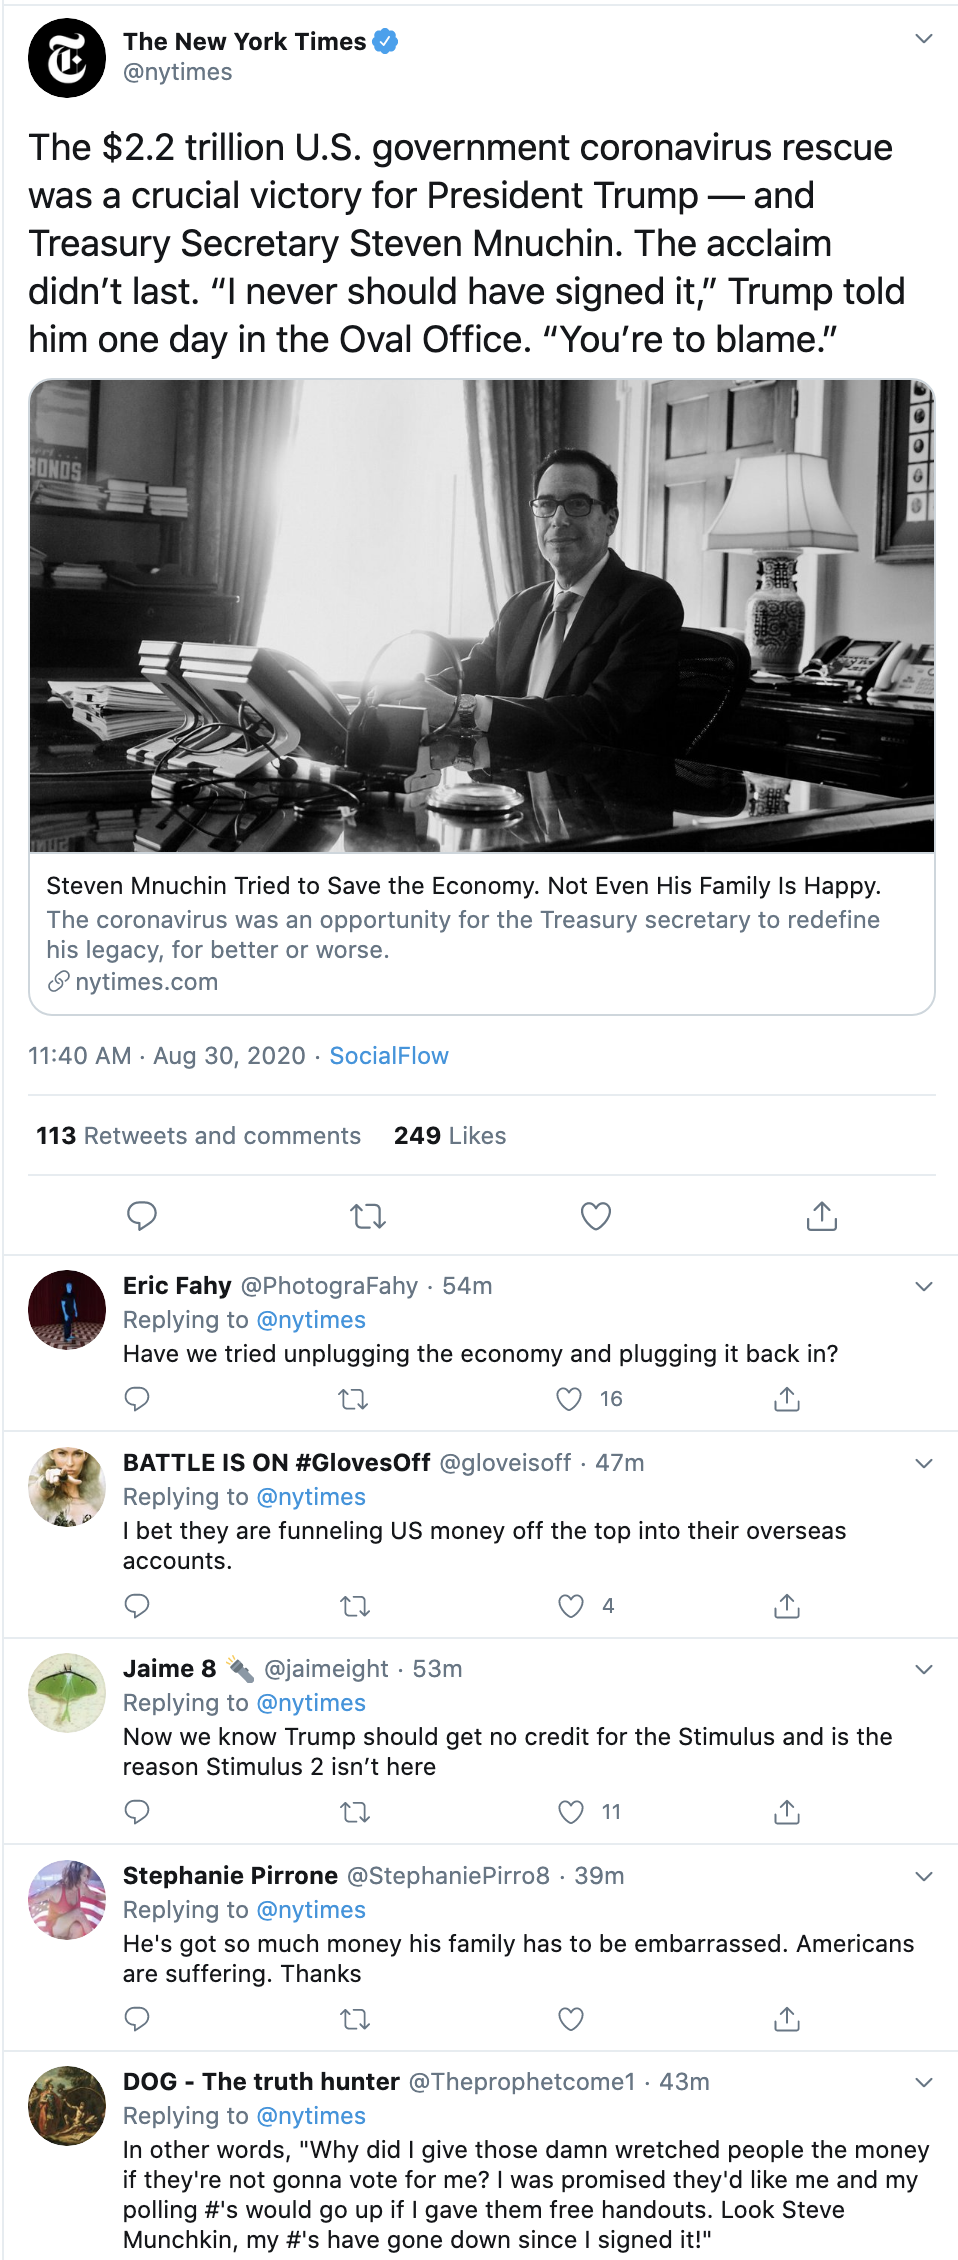 Screen-Shot-2020-08-30-at-12.36.34-PM Steve Mnuchin's Family Publicly Shames Him Over Racism & Trump Economy Featured Natural Disaster Politics Top Stories